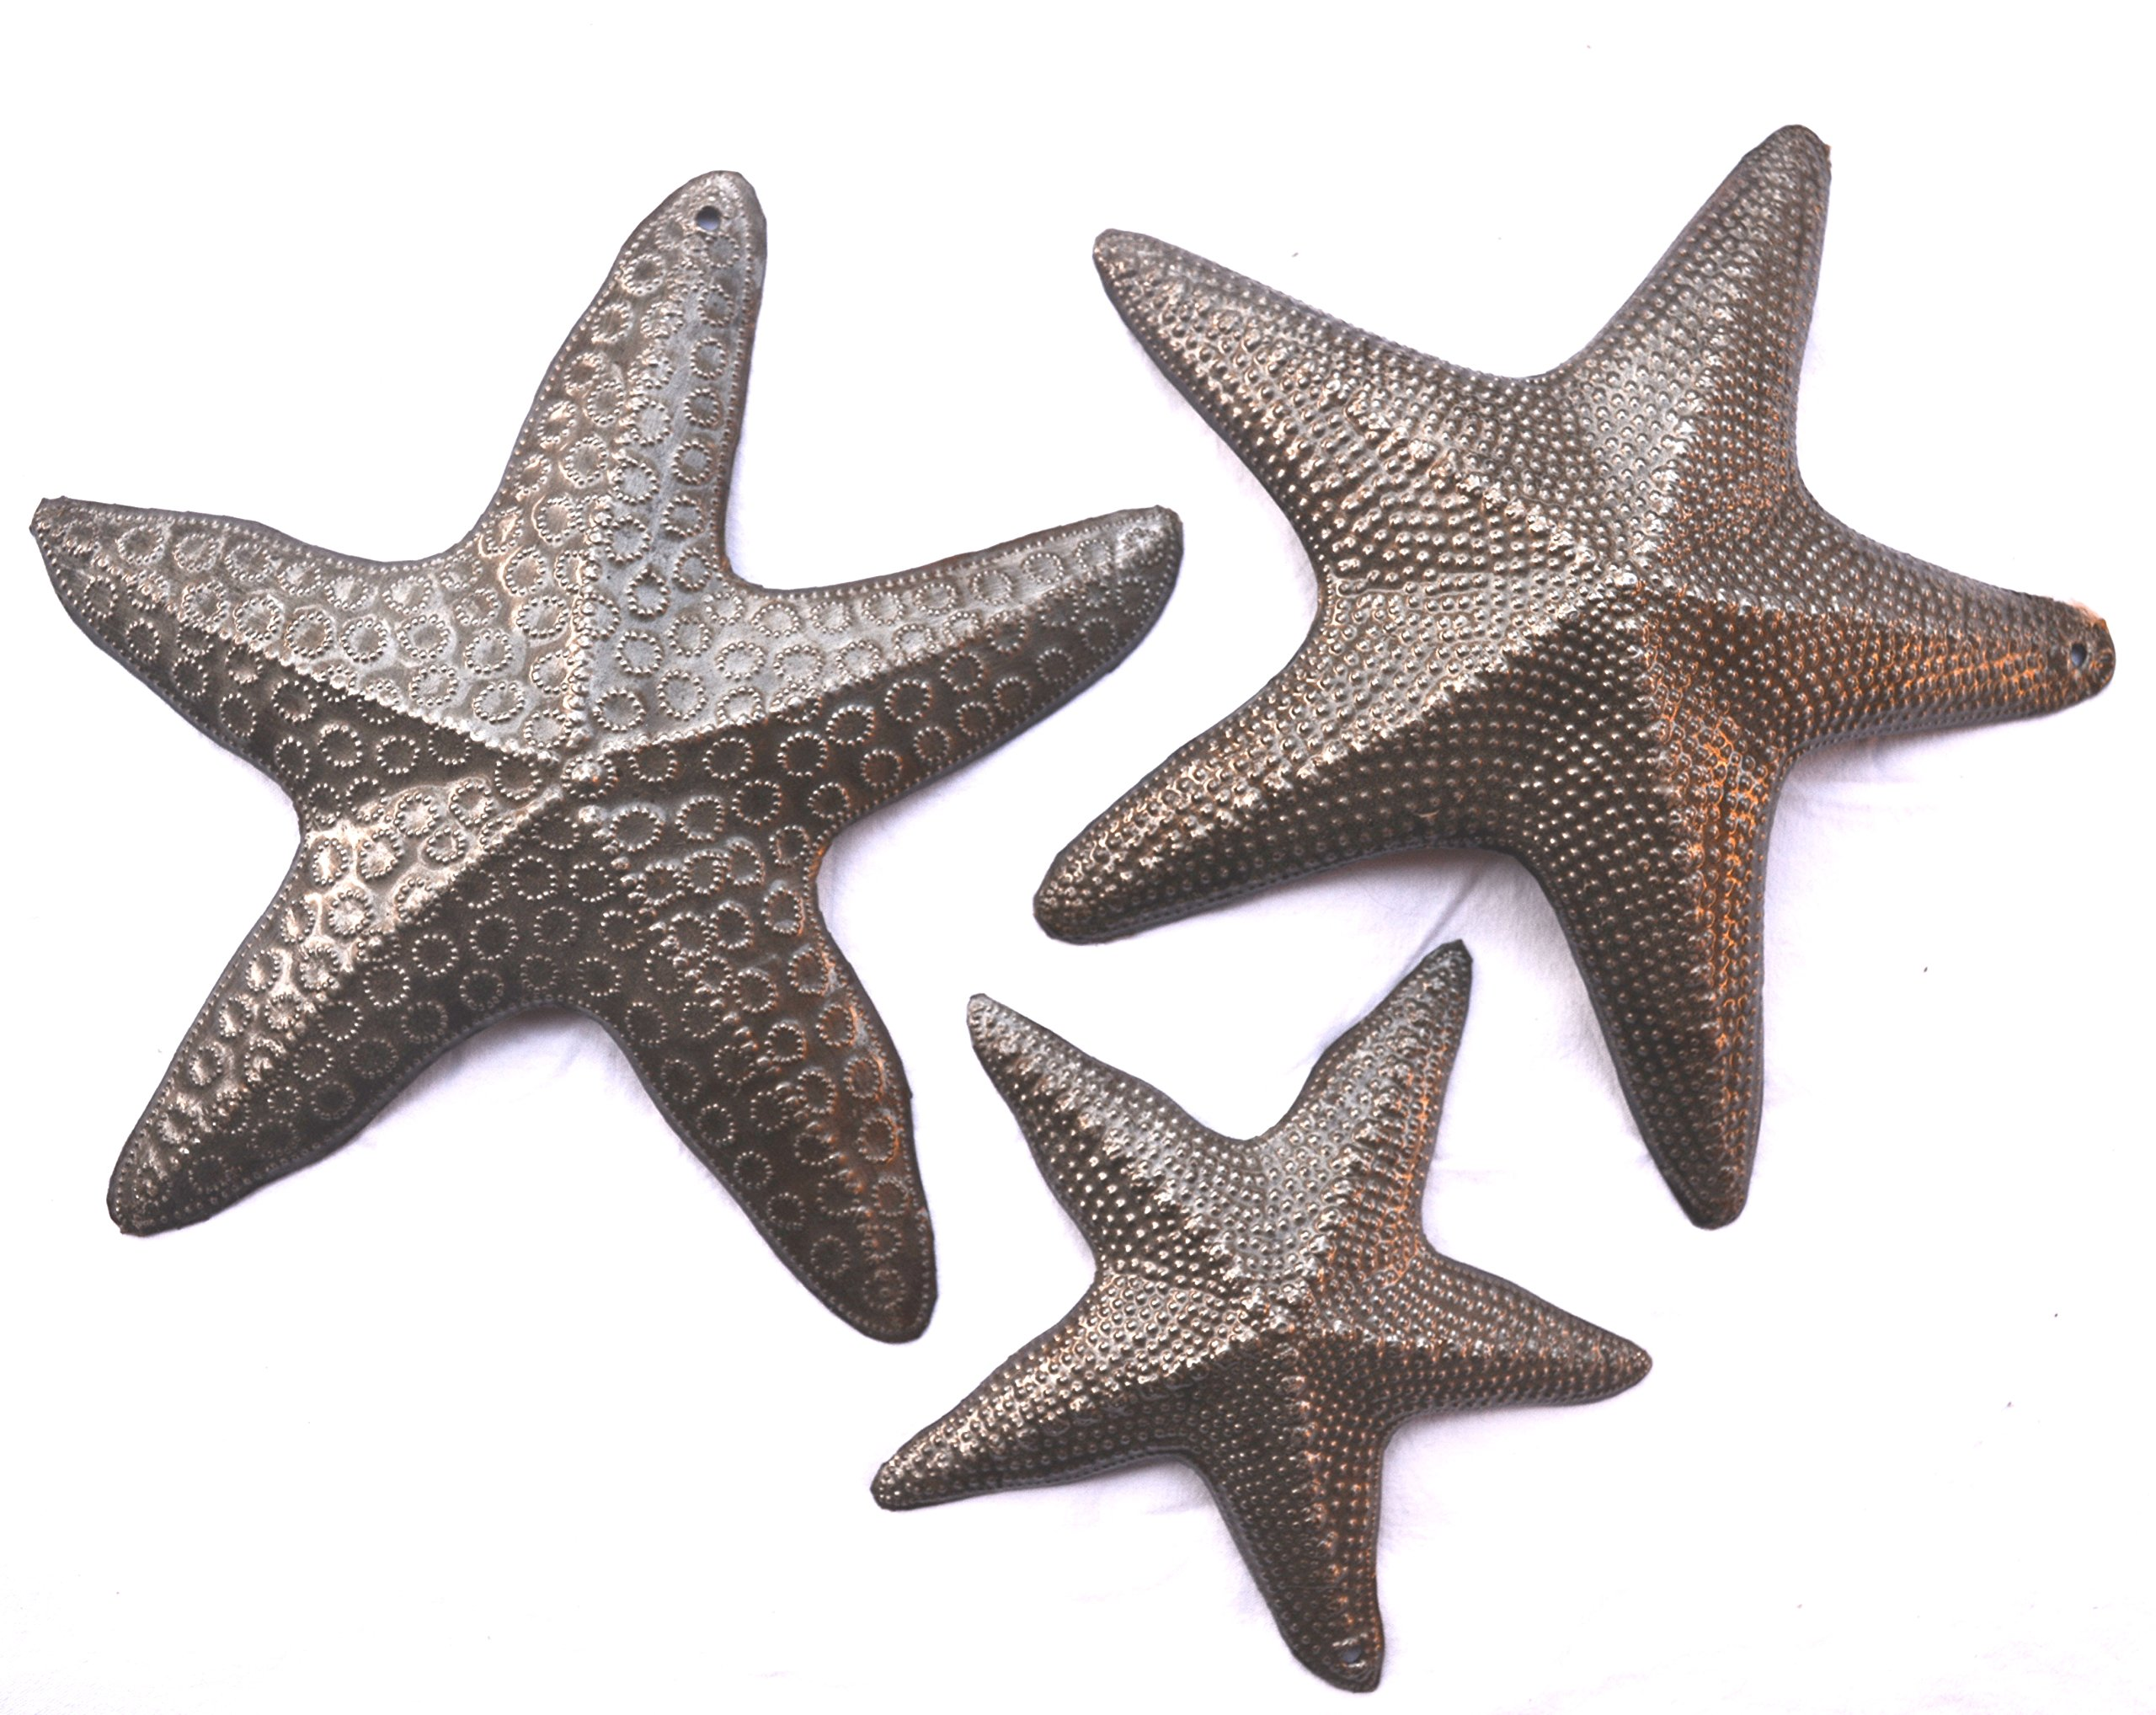 "it's cactus - metal art haiti Starfish, Set of 3, Nautical Home Decor, Recycled Wall Art 8"", 8"" and 5"" - Brilliantly crafted, these starfish are exceedingly versatile items complimentary to any decorative scheme that speaks of the sea. Put them on a wall, or arrange them on a table. With a set of three, you can even do a little of both! Great for indoor and outdoors! Due to the nature of hand-crafted art, some slight color variation may occur. - living-room-decor, living-room, home-decor - 918%2BIGlhoqL -"